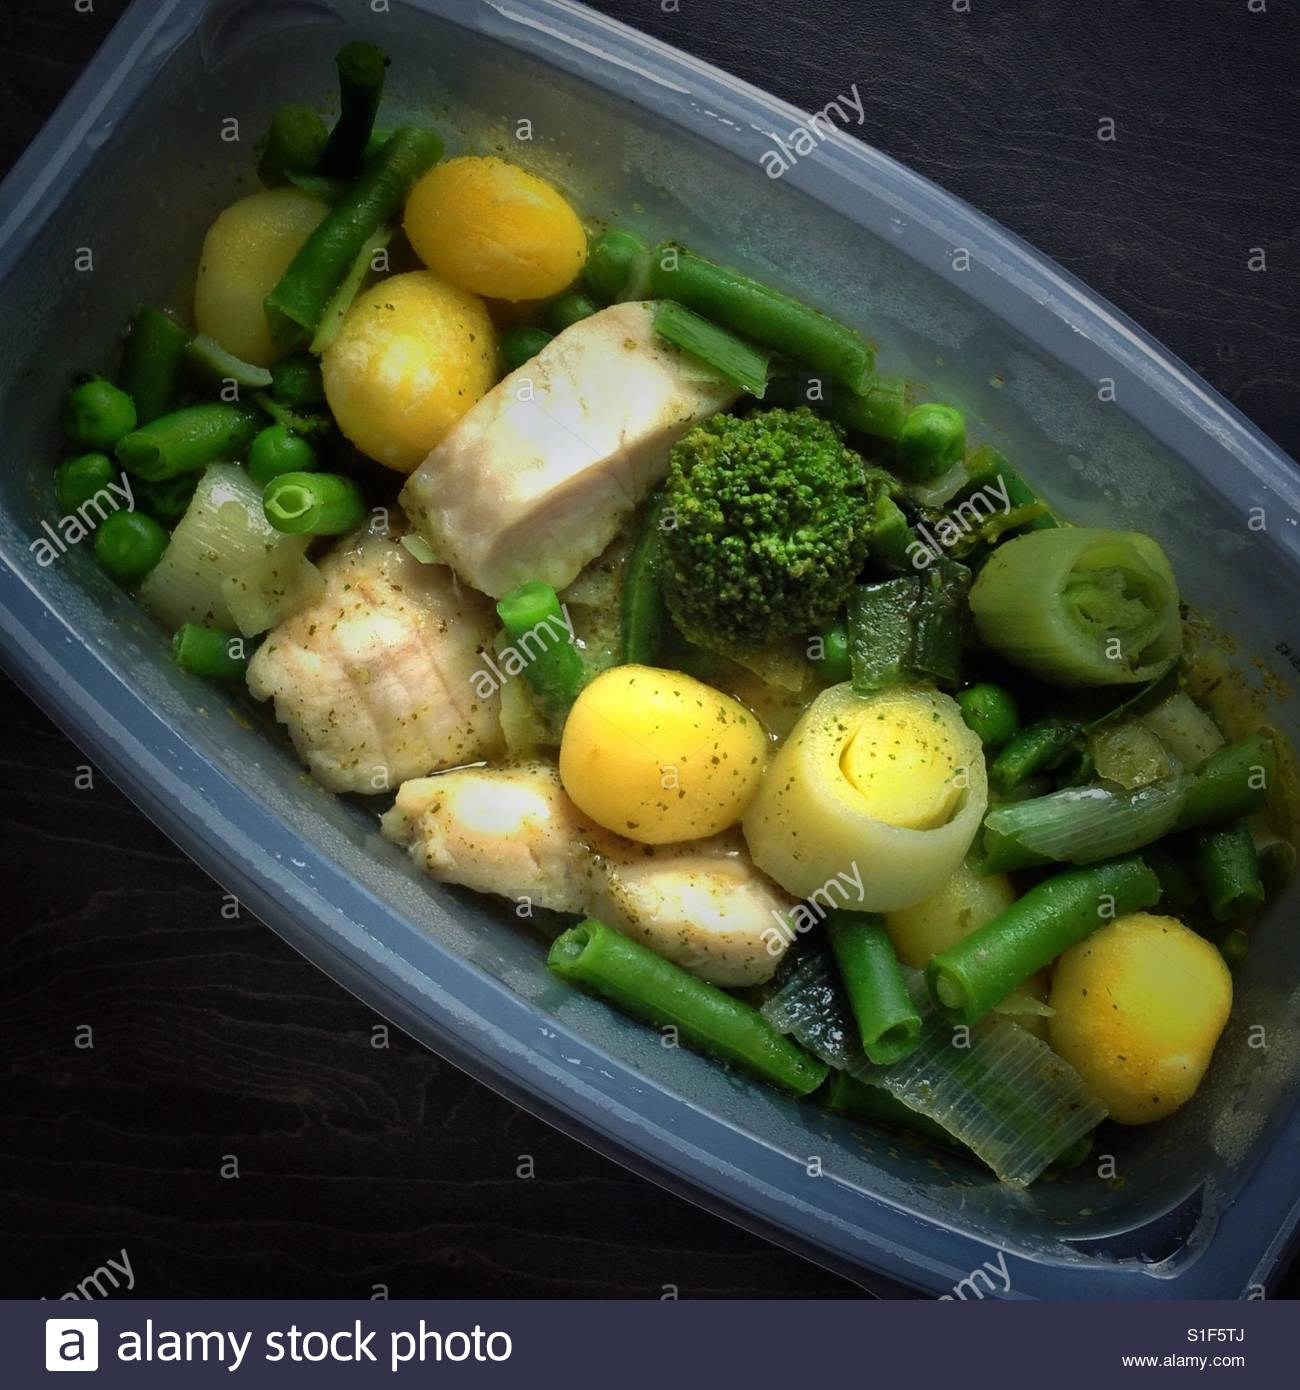 Microwave meal of fish and vegetables in plastic tray from above - Stock Image